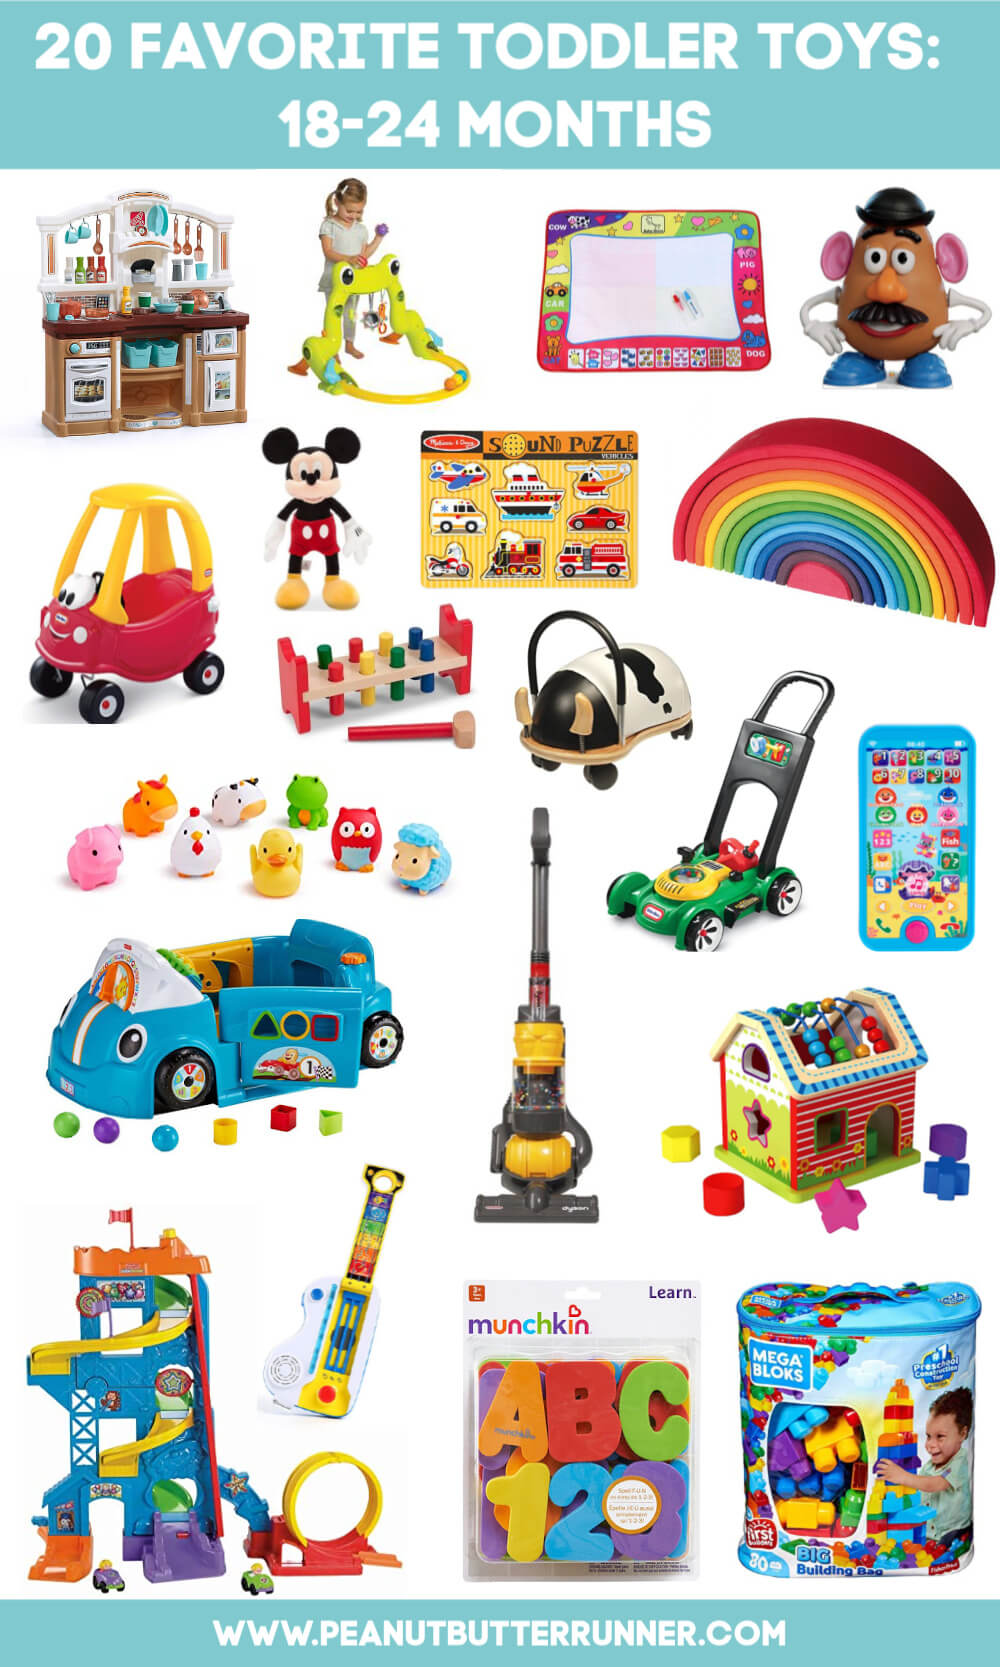 18-24 months toddler toys